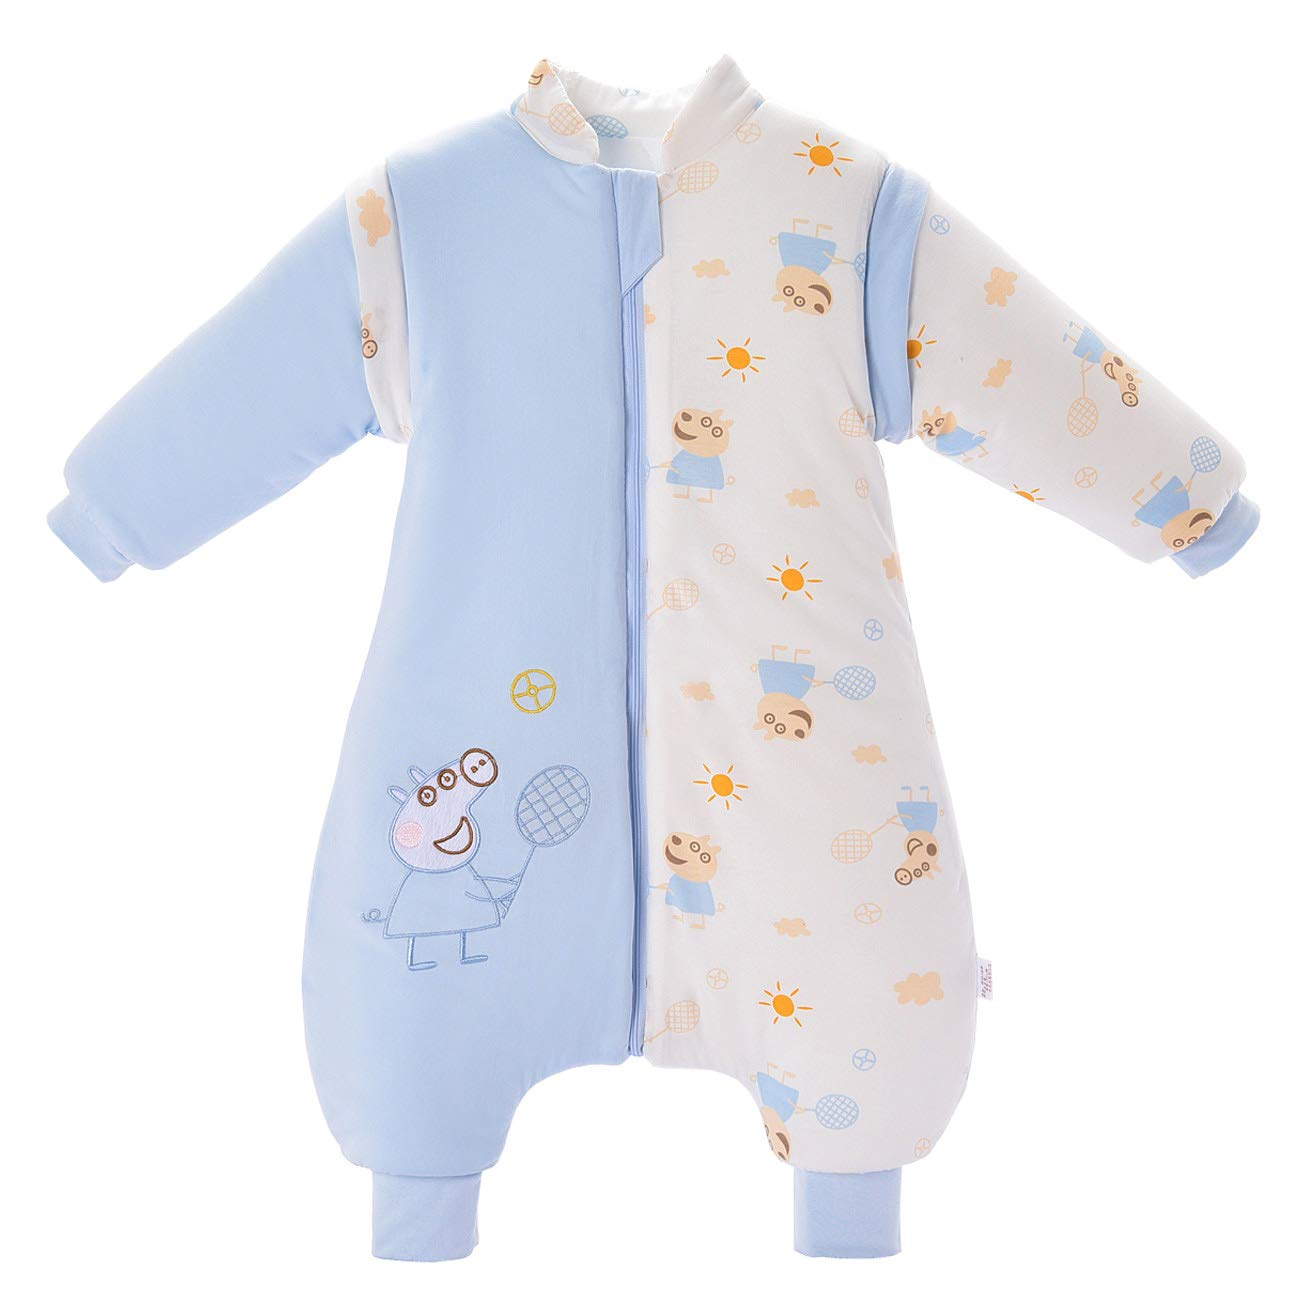 Baby Sleeping Bag with Feet and Long-Sleeved Pyjamas Cotton,Baby Sleepsuit for Baby 1 to 3 Years. (M(0-1 Years Old), Pink) Mosebears